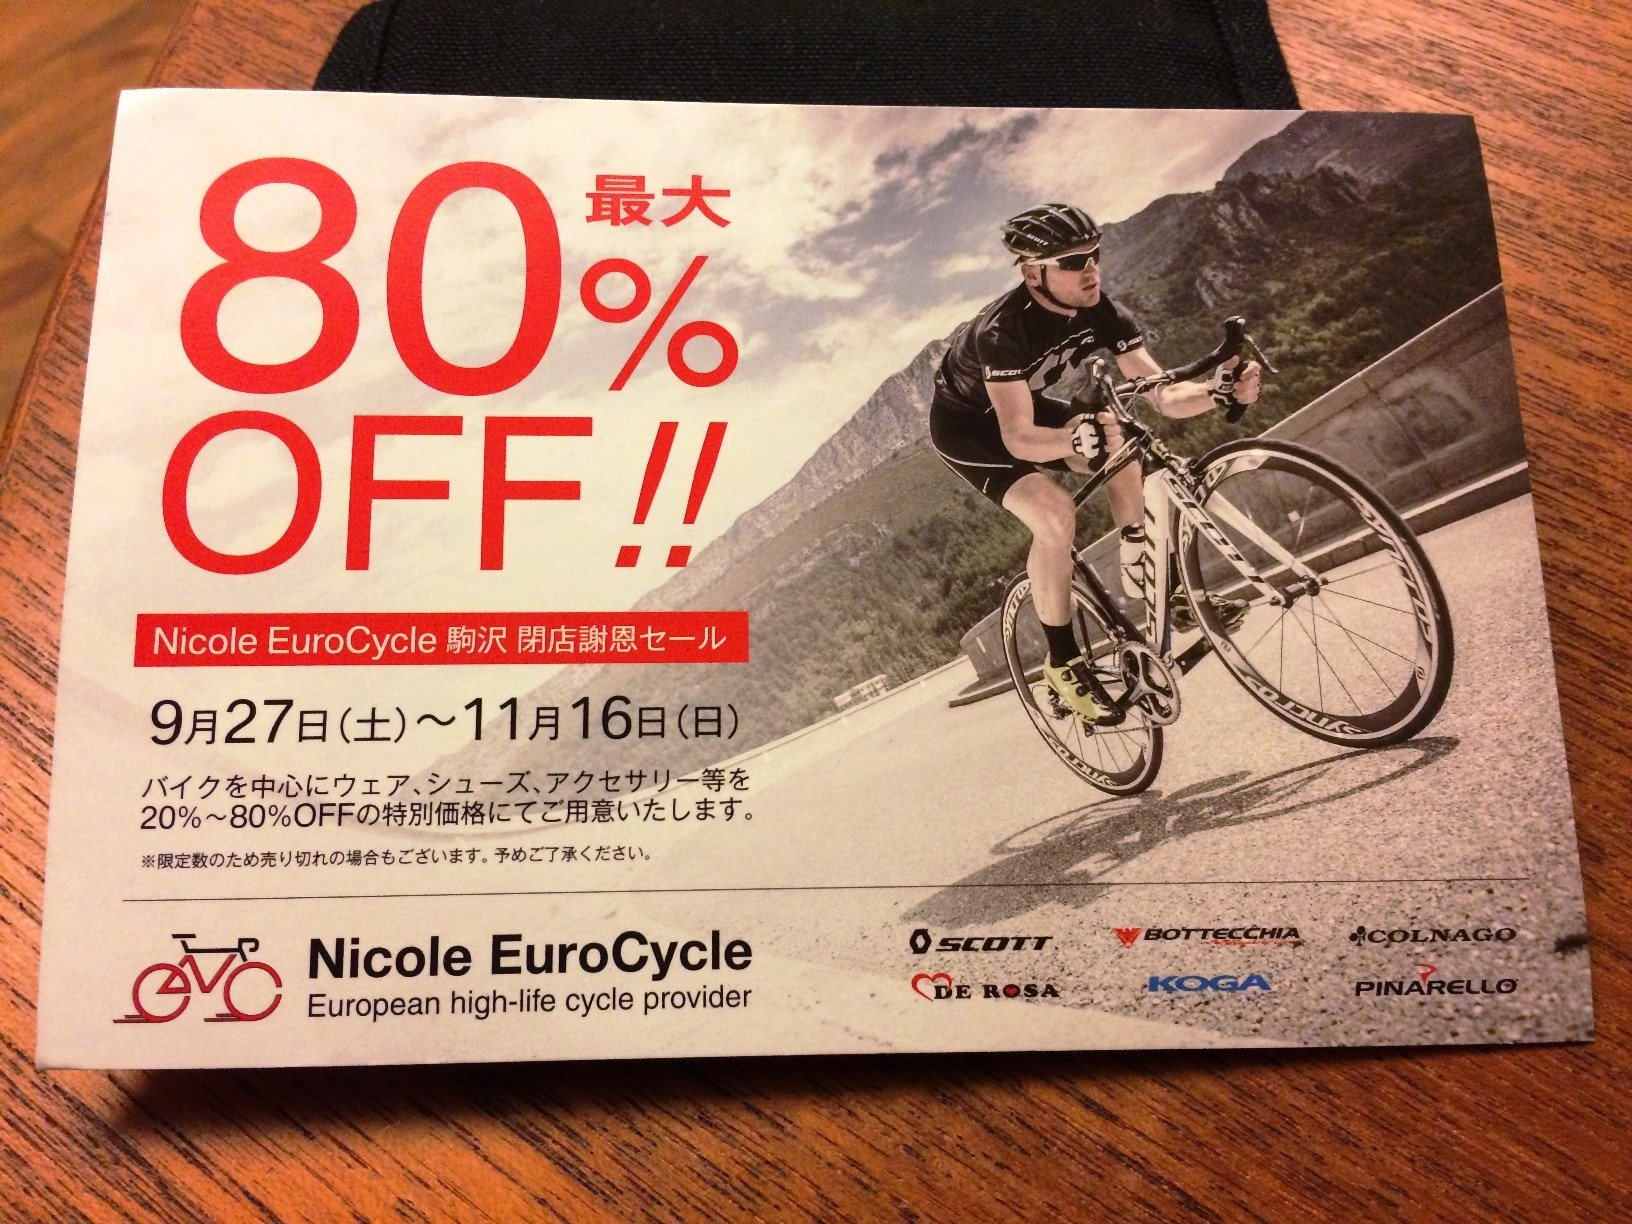 Nicole EuroCycle(ニコル ユーロサイクル) 駒沢店が閉店